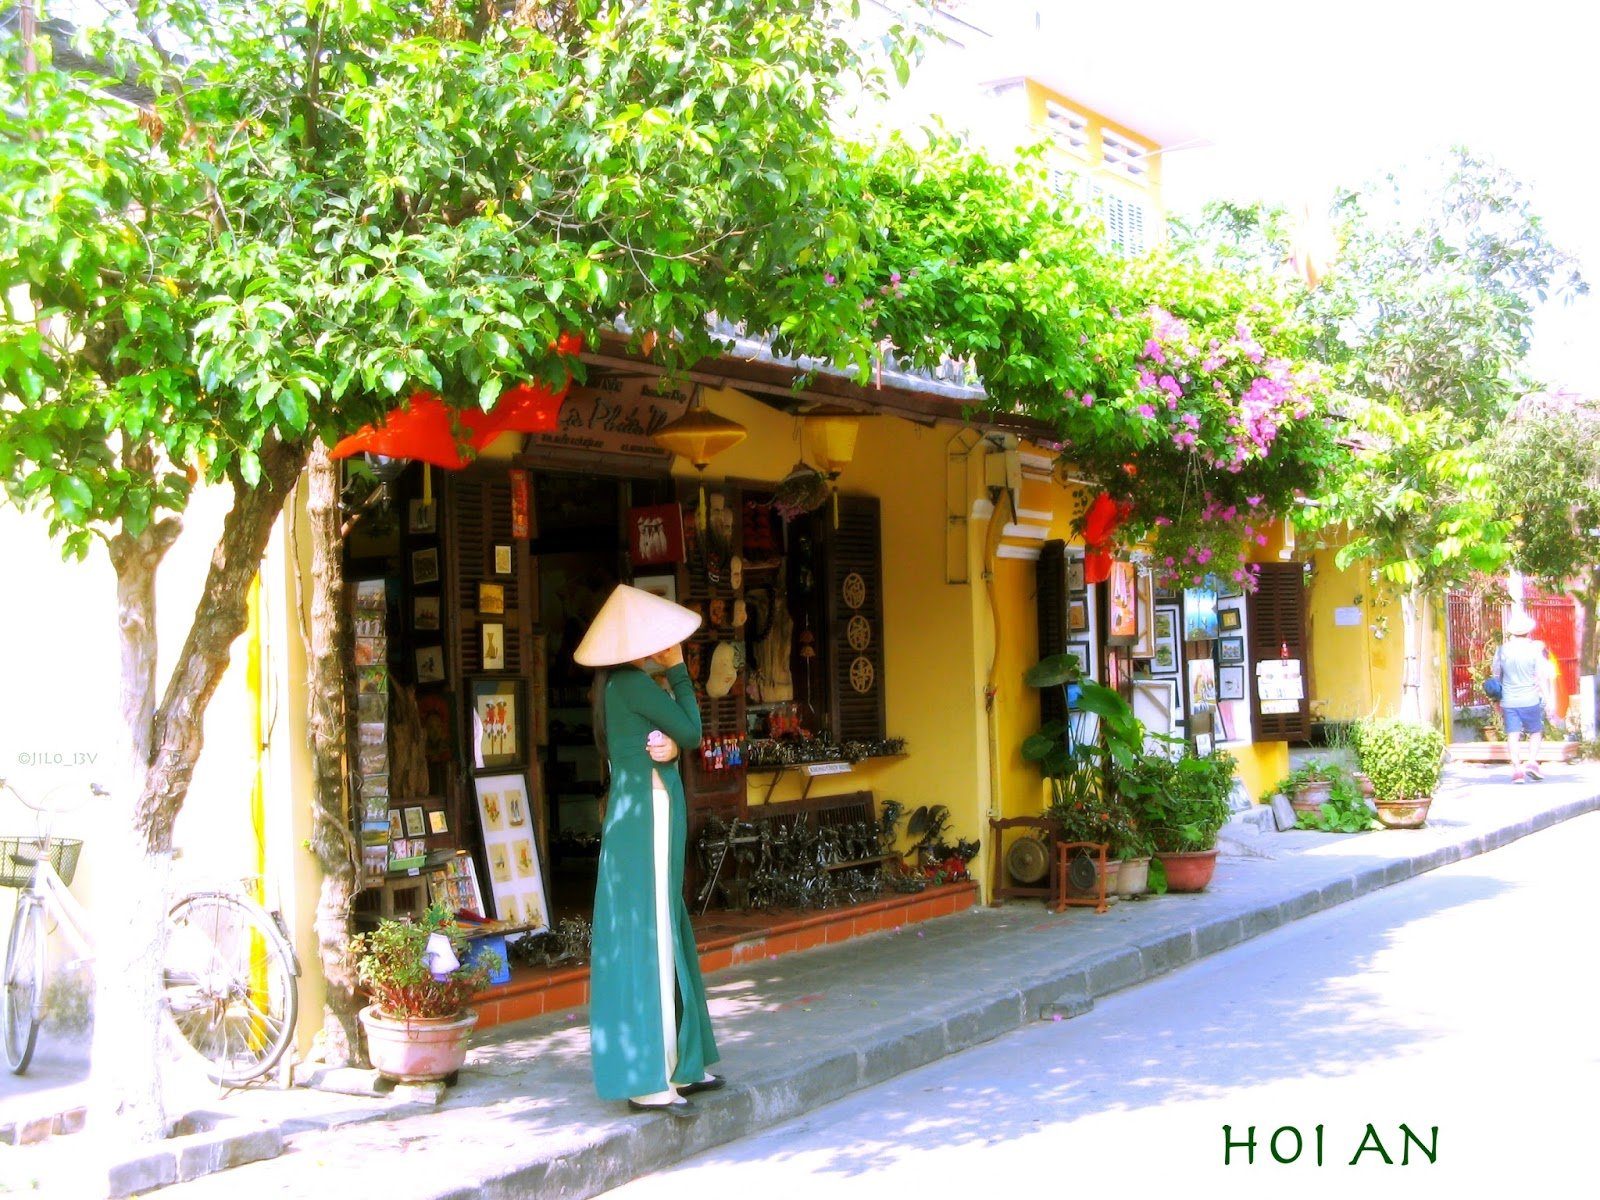 hoi an old town an ancient The ancient town of hoi an is a typical example of traditional ports in southeast   coming to hoi an, besides interesting excursions outside the old town to enjoy.